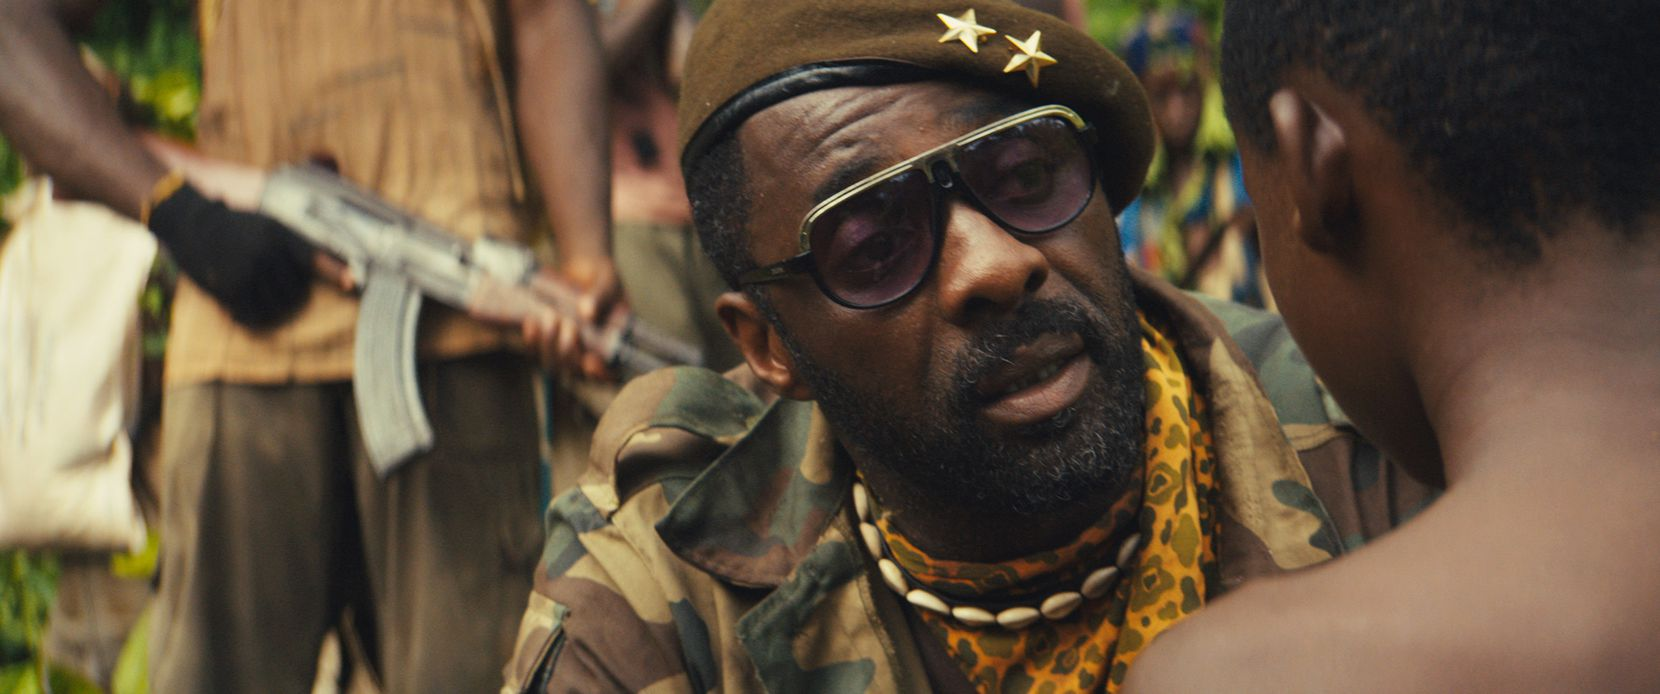 """Idris Elba, center, as Commandant, in the Netflix original film, """"Beasts of No Nation,"""" directed by Cary Fukunaga."""